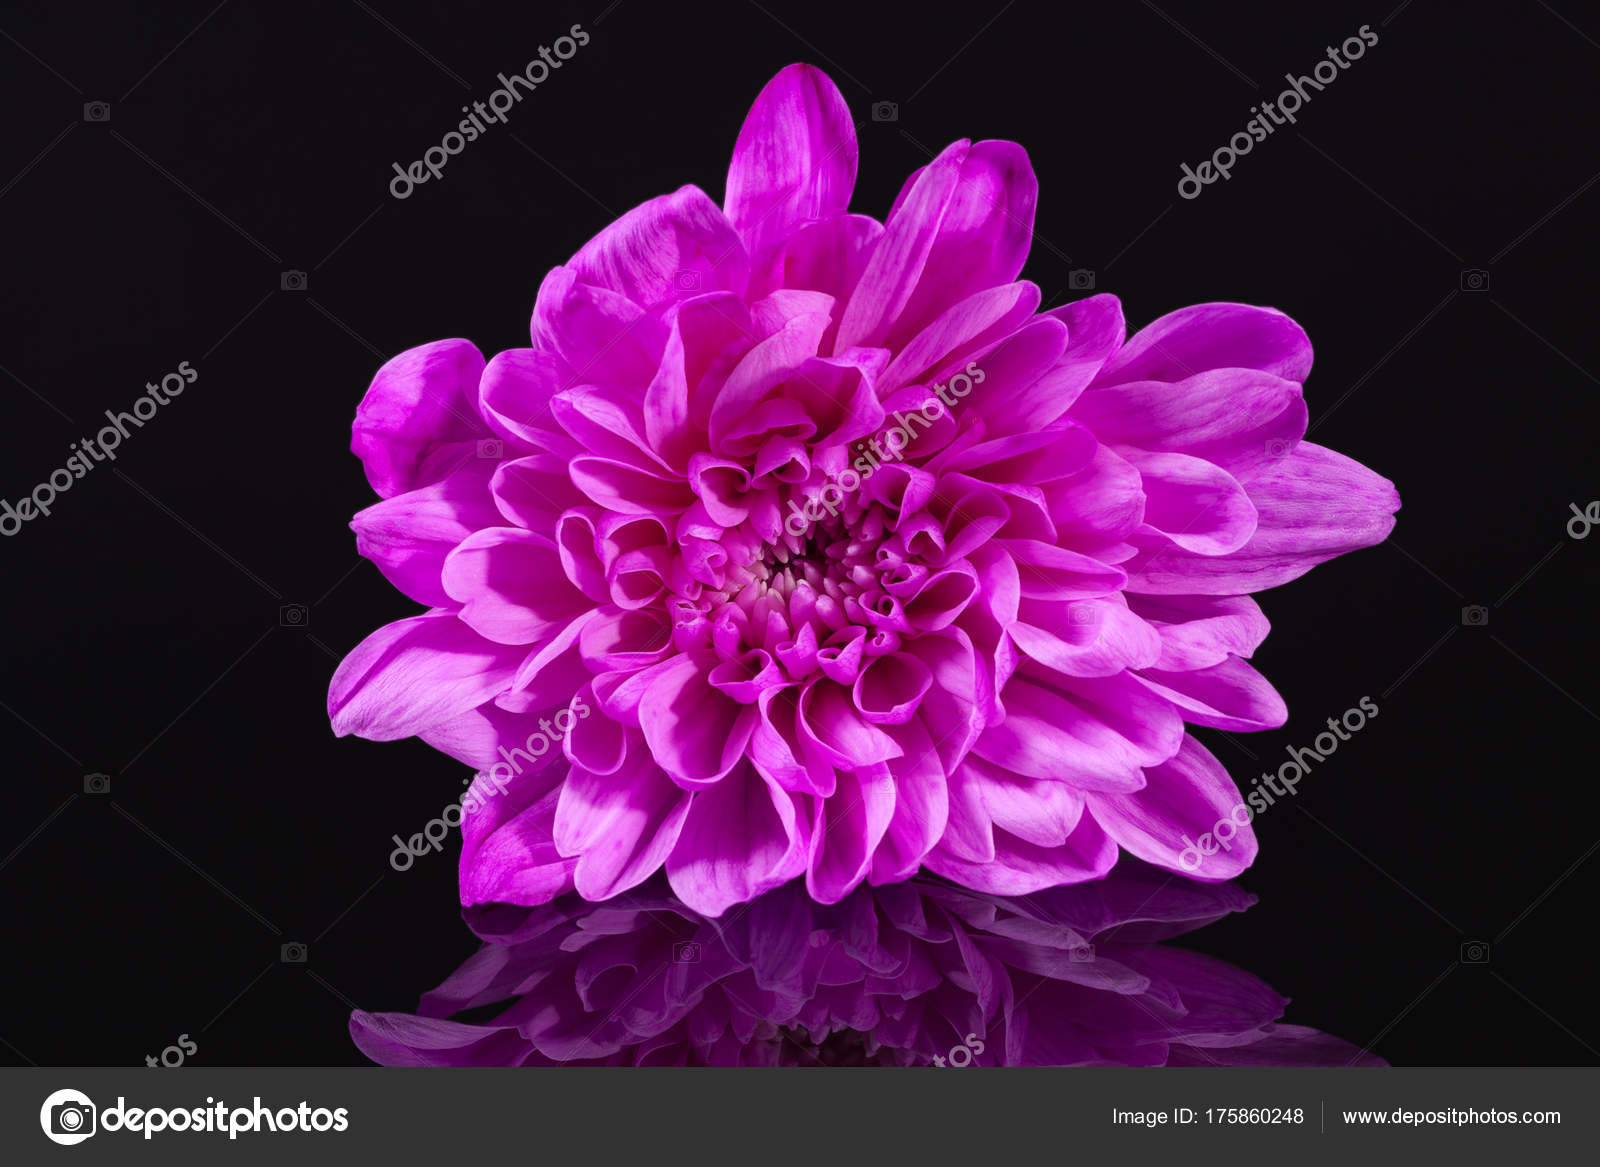 Single pink flower chrysanthemum on black background stock photo single pink flower chrysanthemum on black background stock photo mightylinksfo